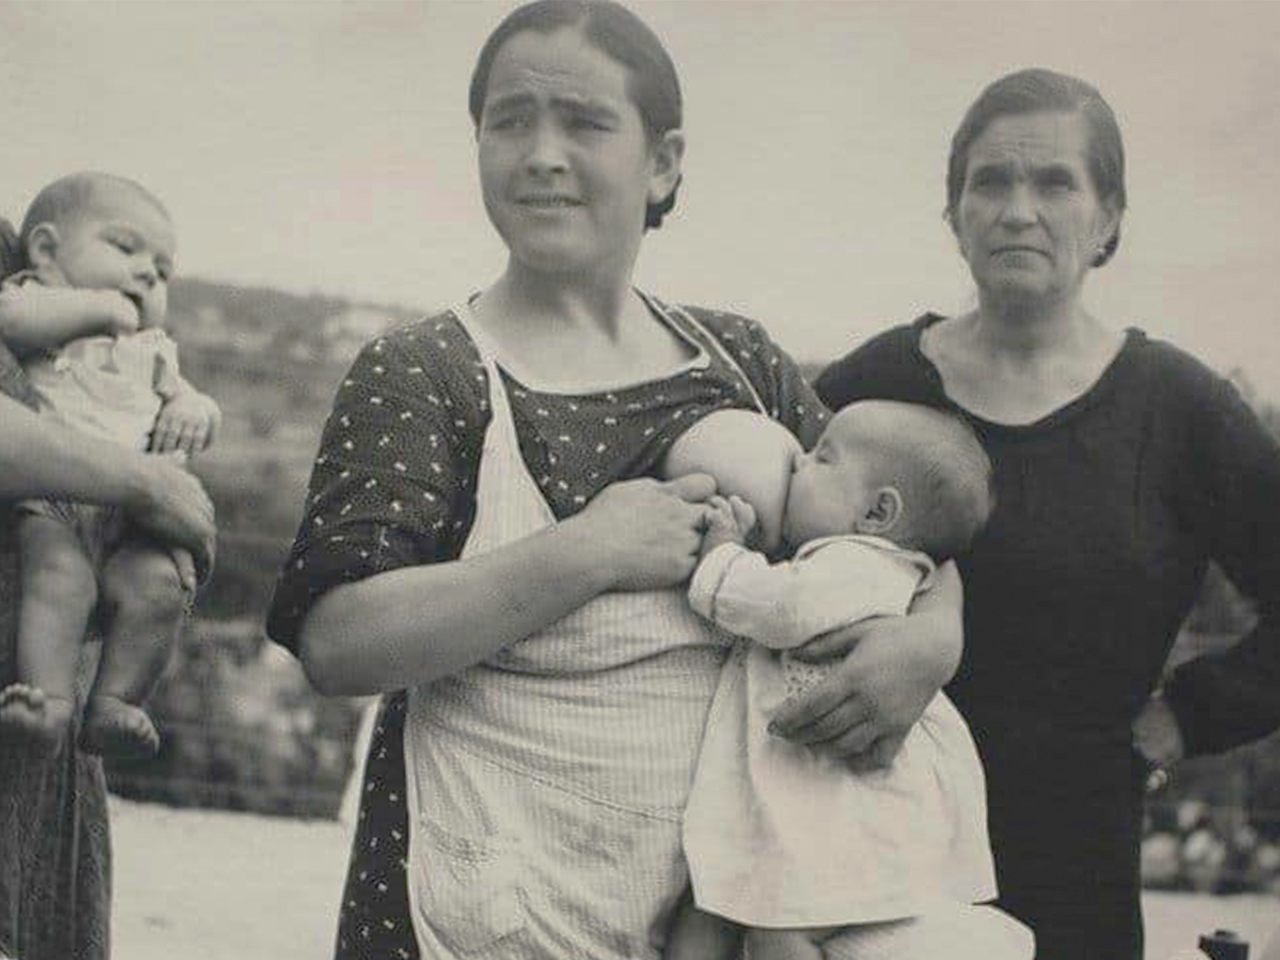 Vintage photo of mom breastfeeding her baby in public